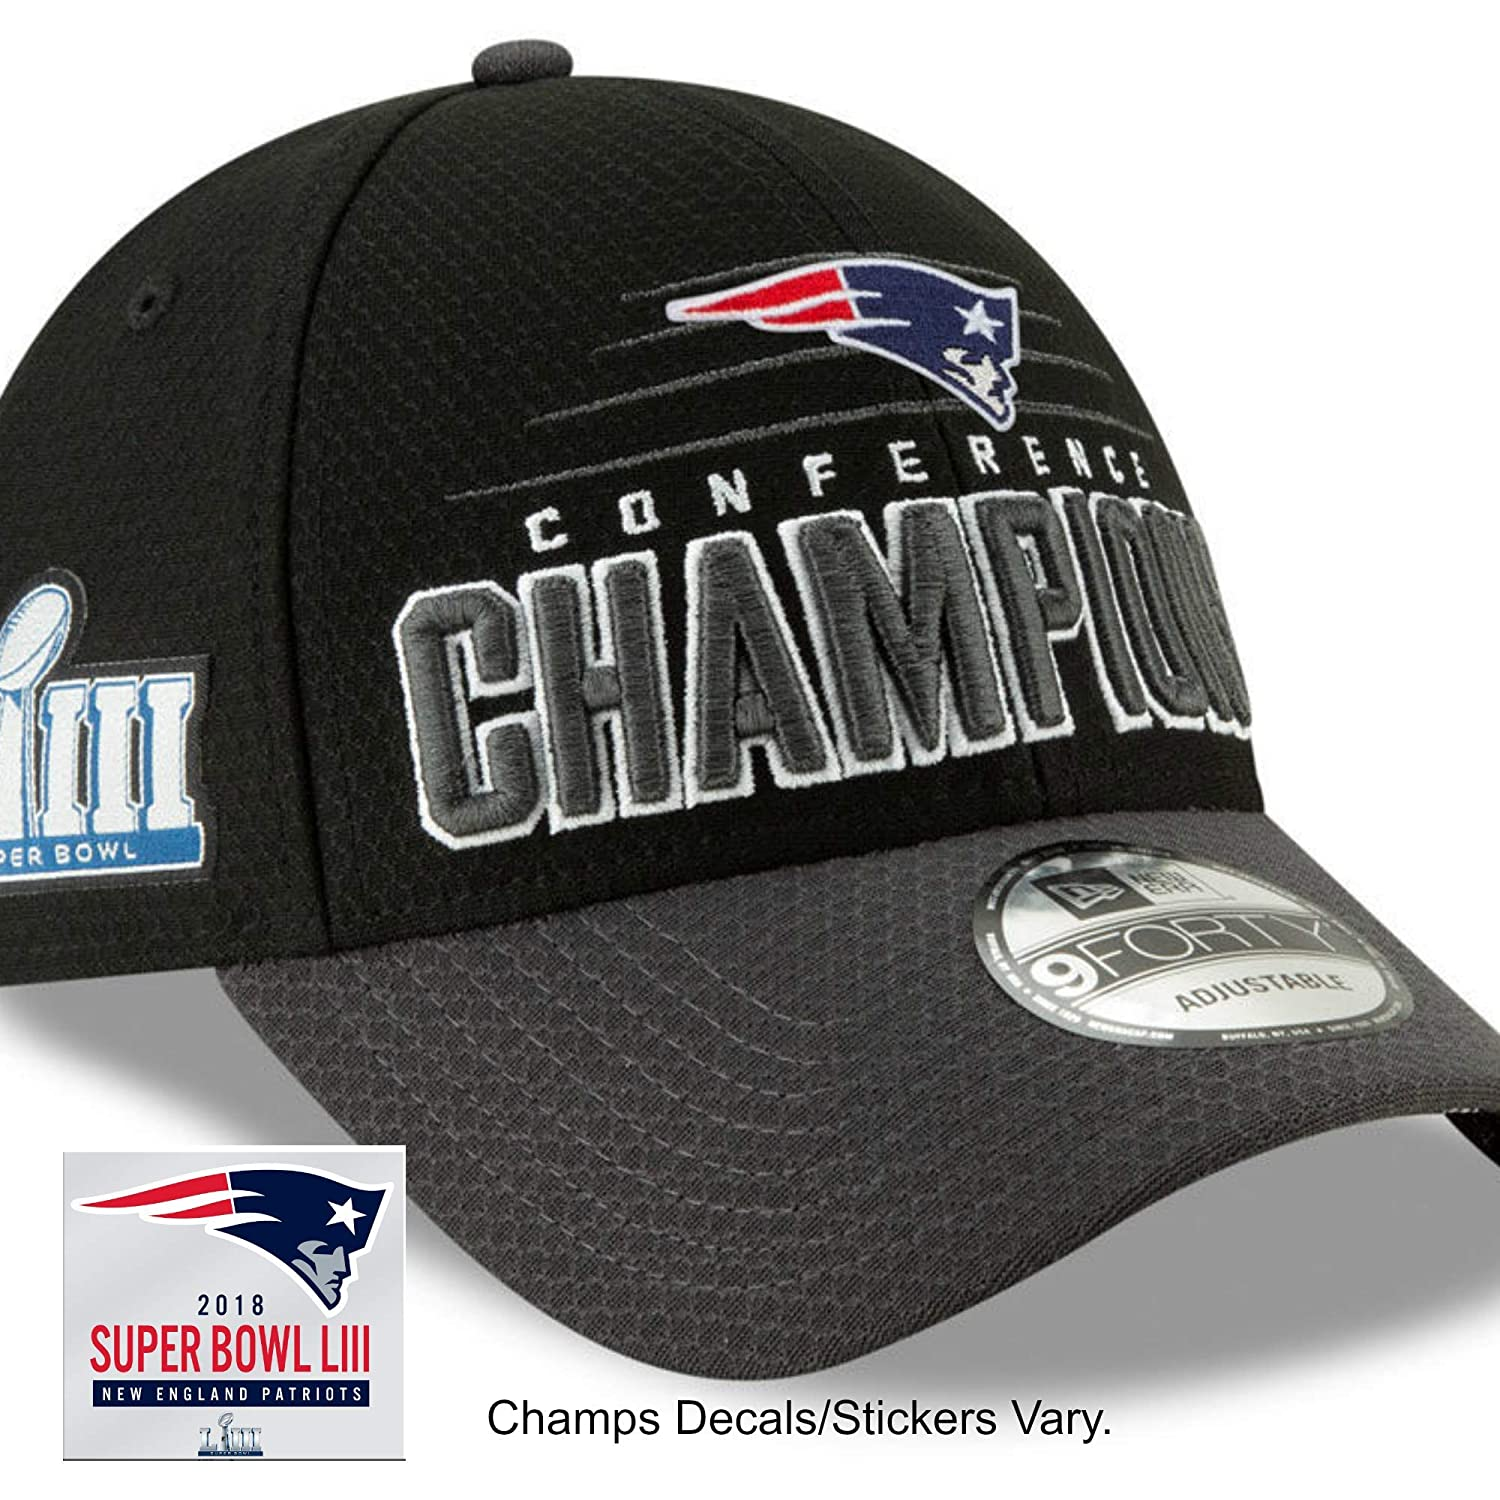 Amazon.com   Official Patriots Men s Super Bowl LIII Conference Champion  Locker Room Hat Cap   Championship Decal Sticker   Sports   Outdoors 8ae910affa41